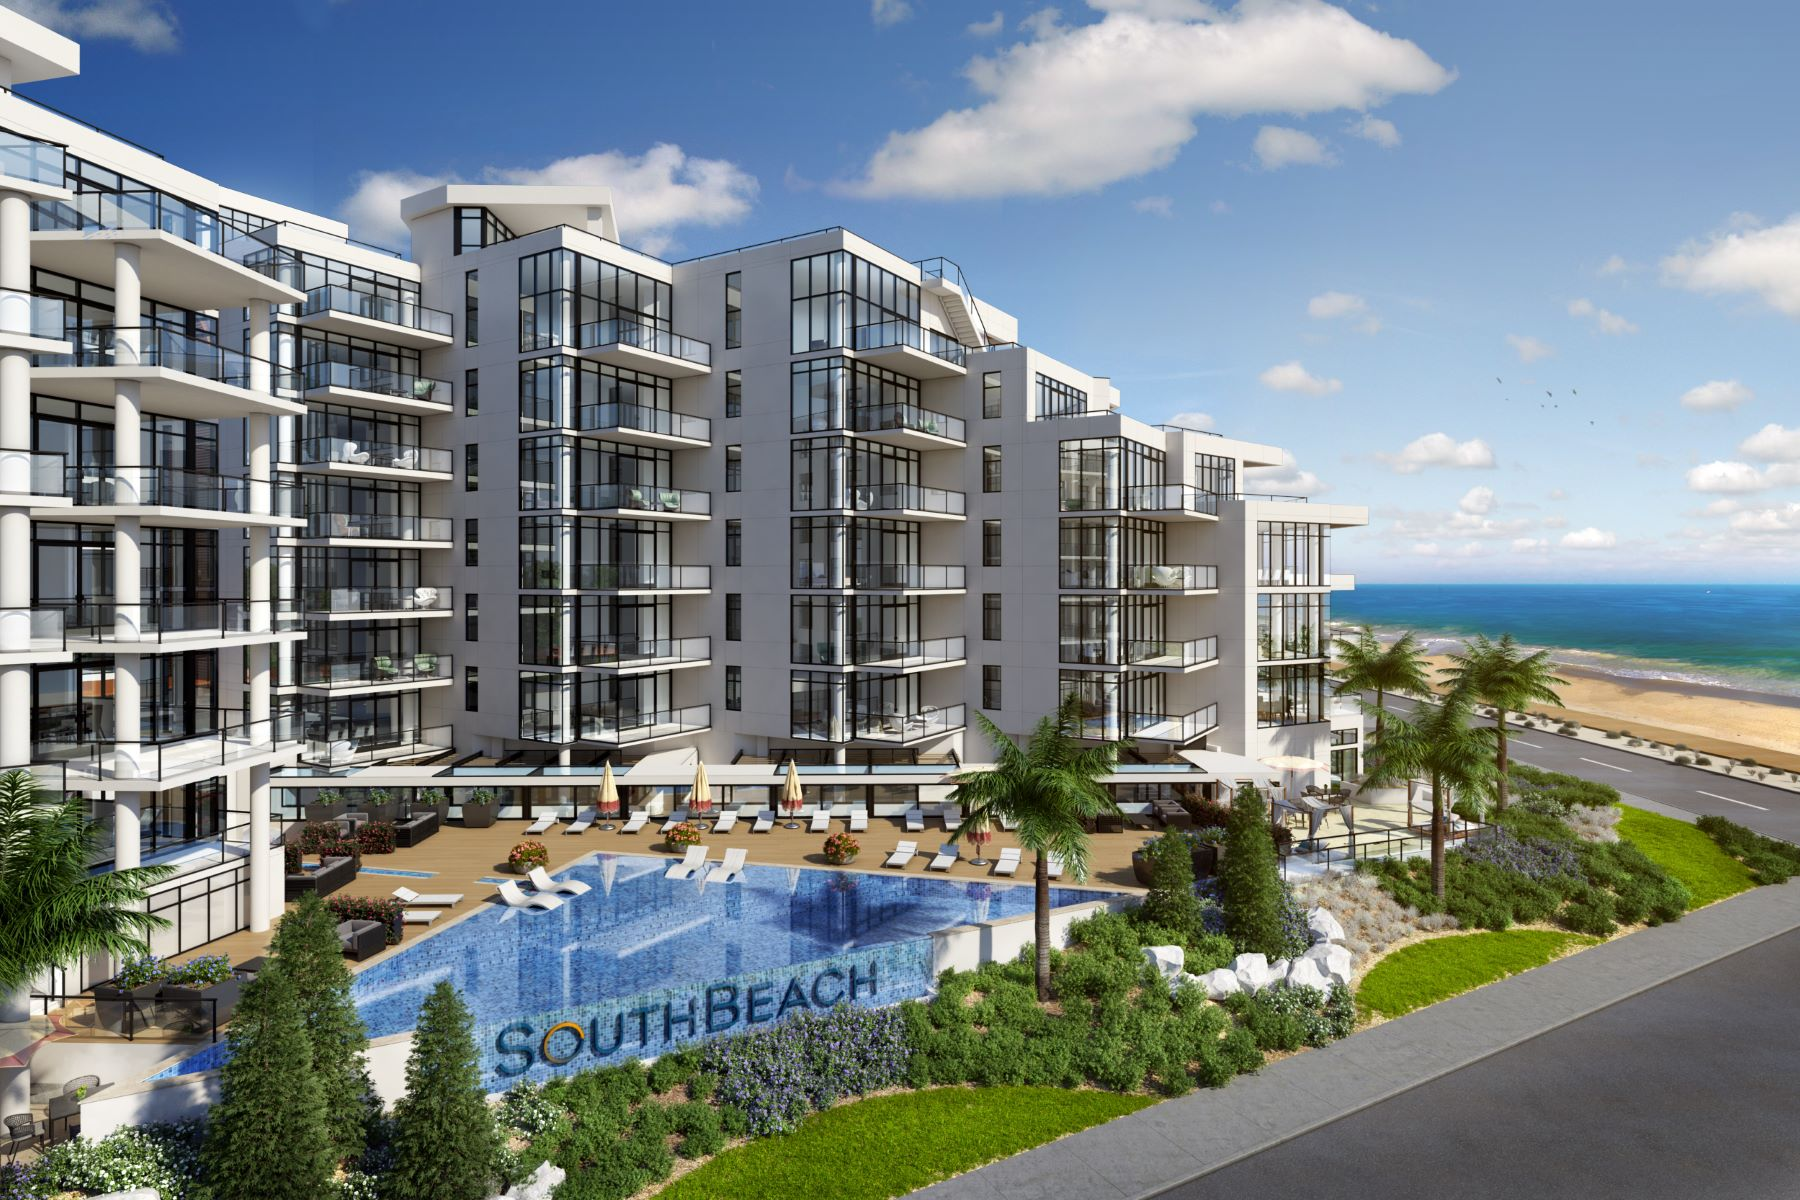 Condominiums for Sale at South Beach at Long Branch 350 Ocean Avenue 104/207 Long Branch, New Jersey 07740 United States